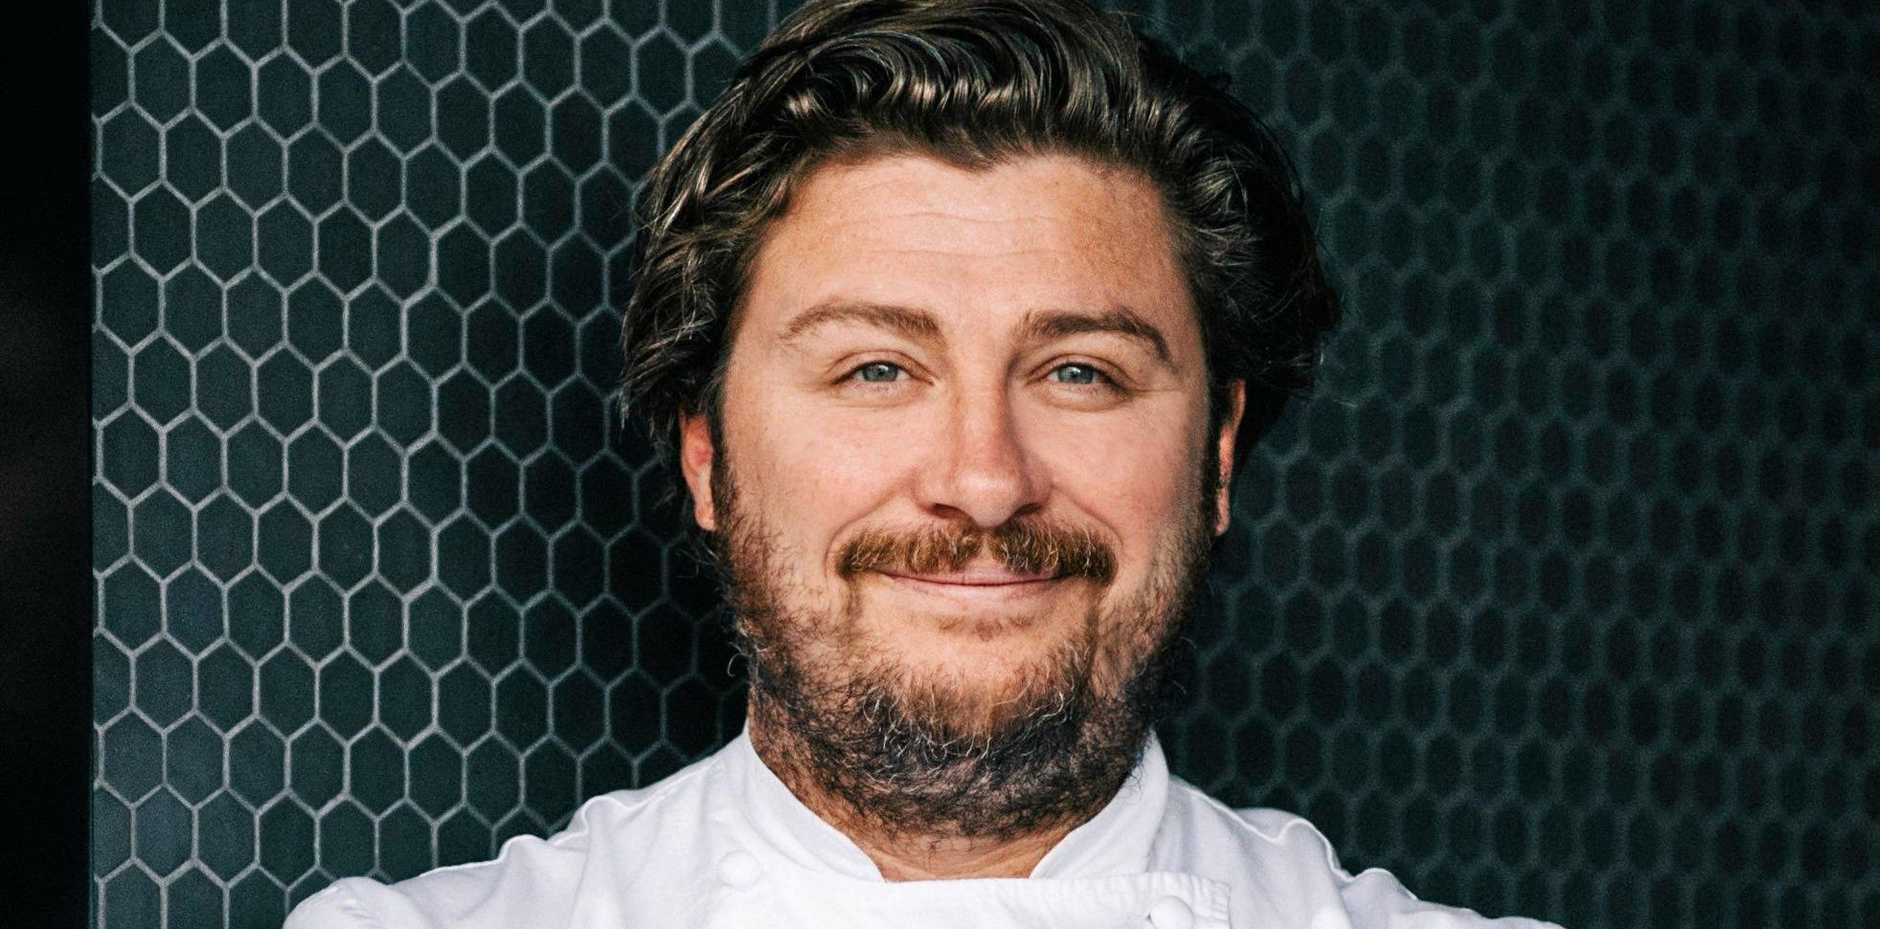 FORAGE: Acclaimed chef Scott Pickett will feature at a unique event at this year's Noosa Food and Wine Festival.